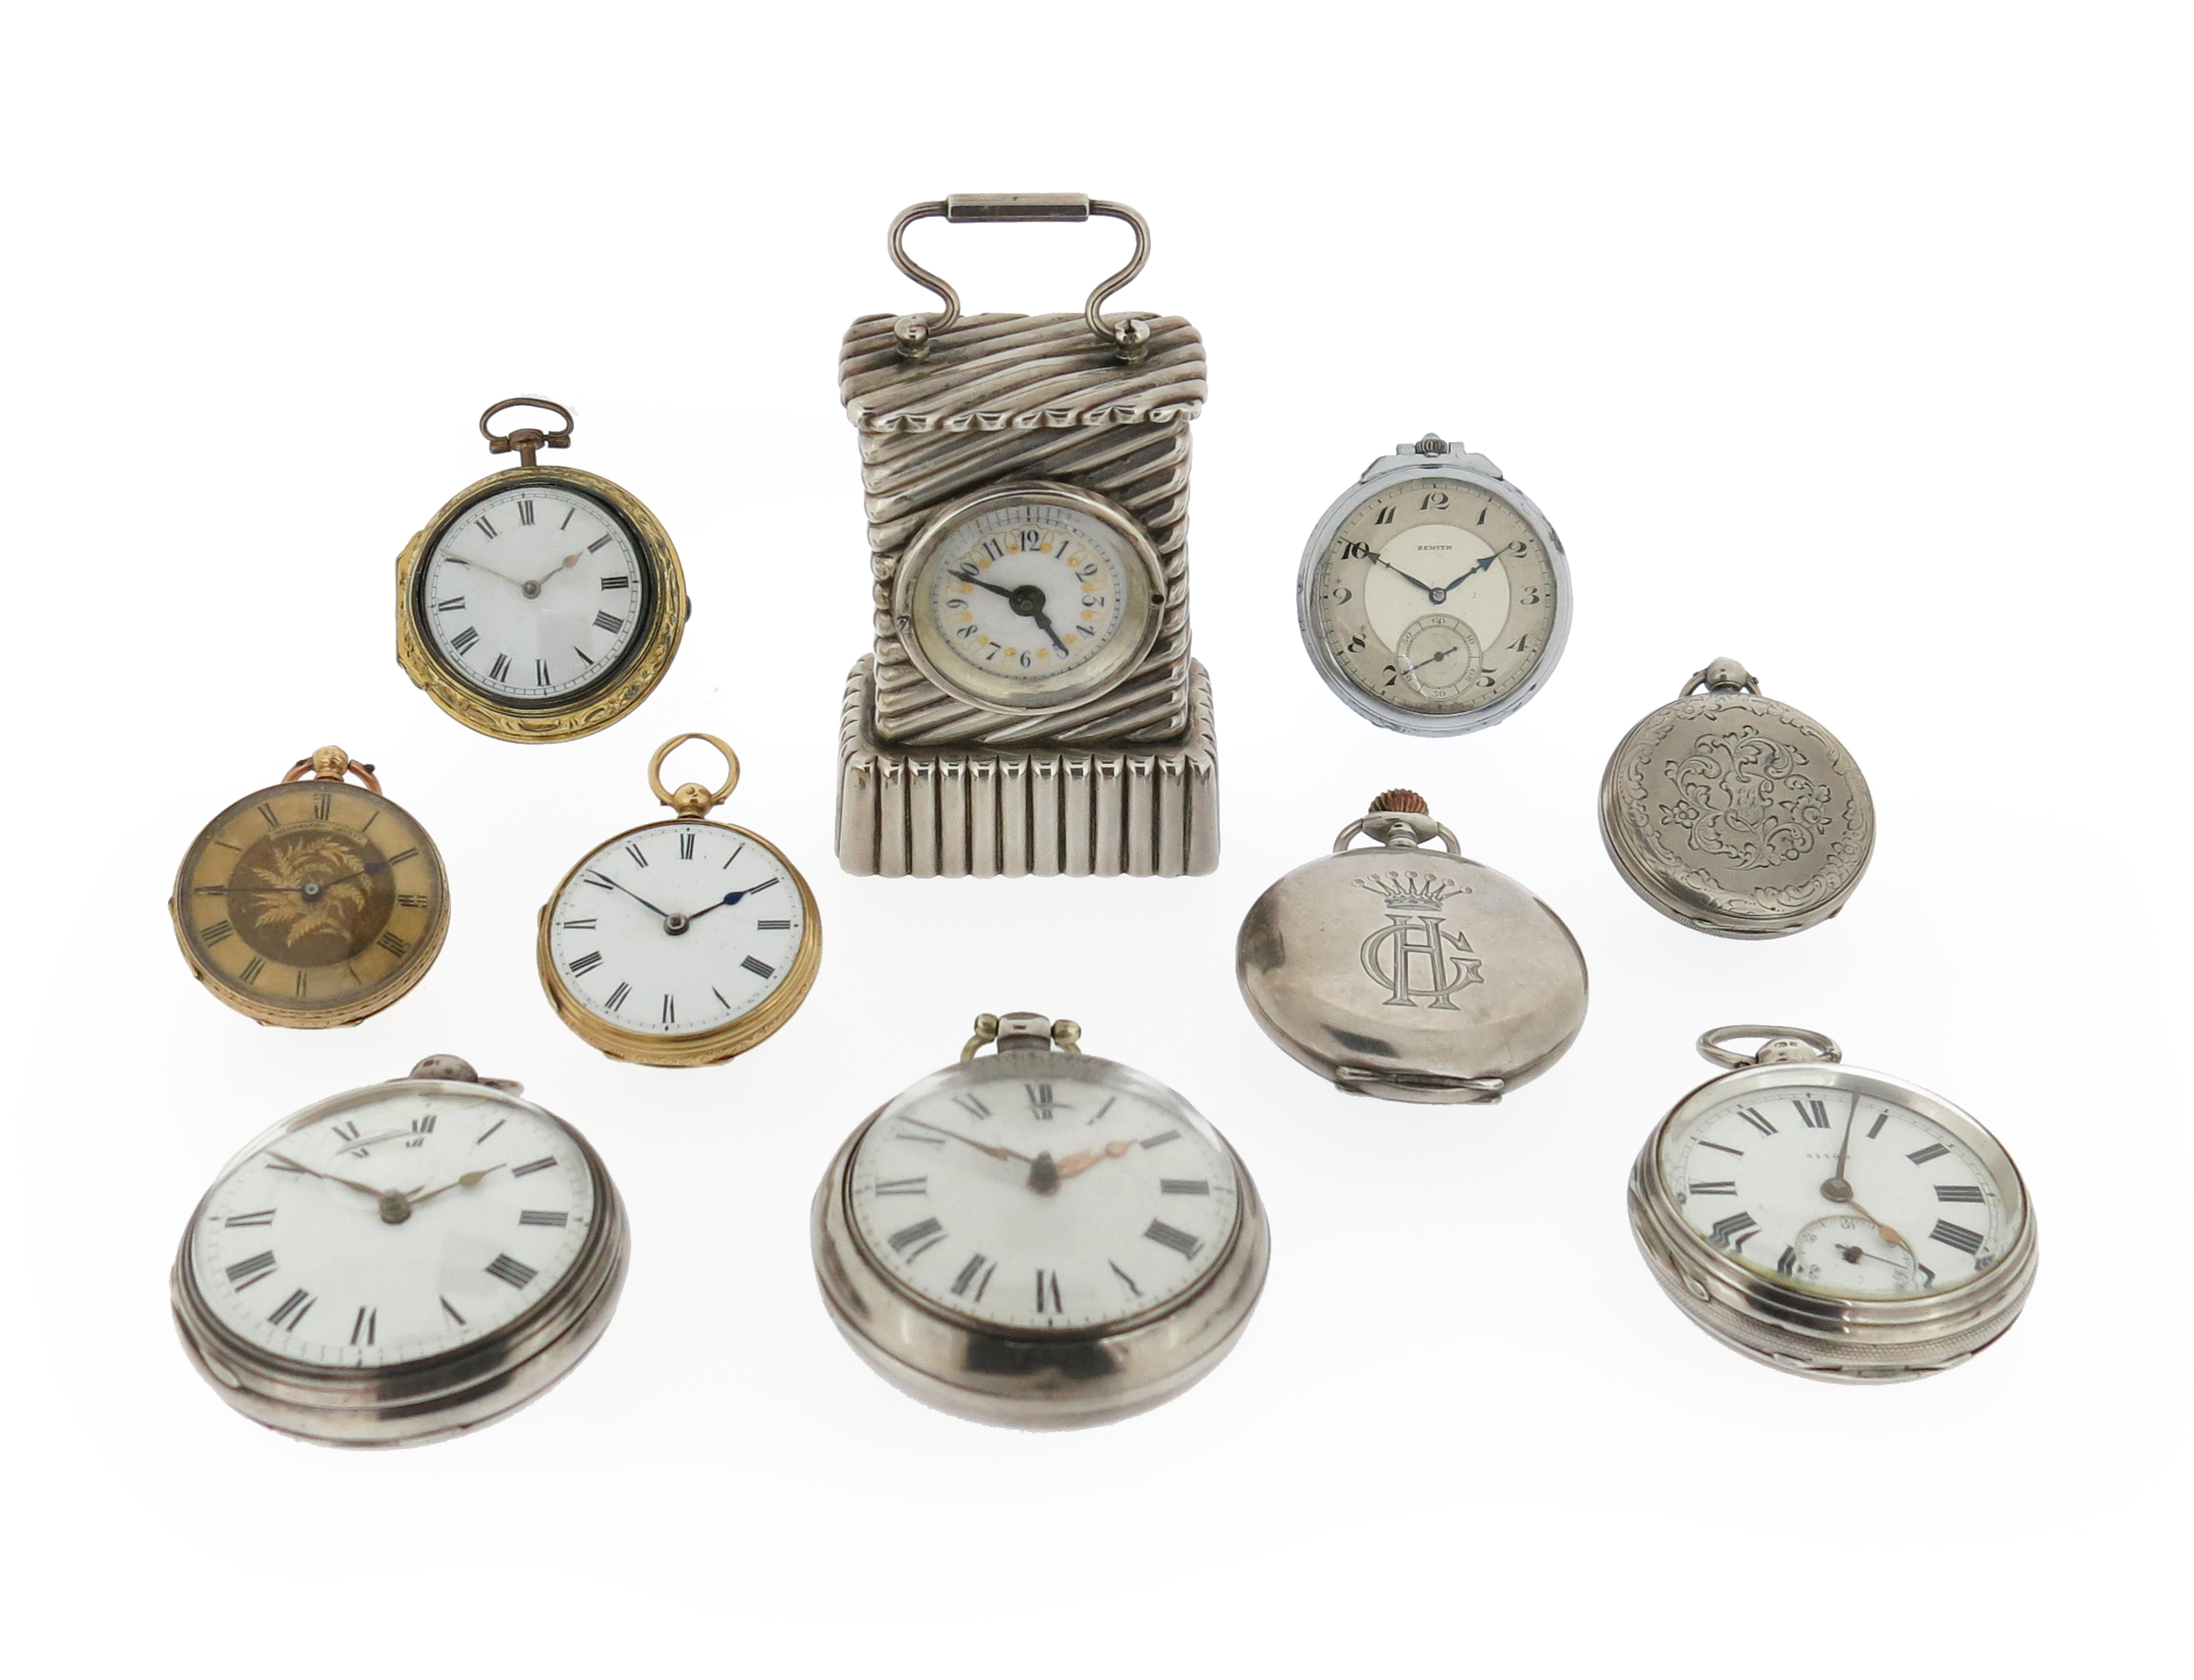 A collection of nine silver gold and base metal pocket watches and a desk clock